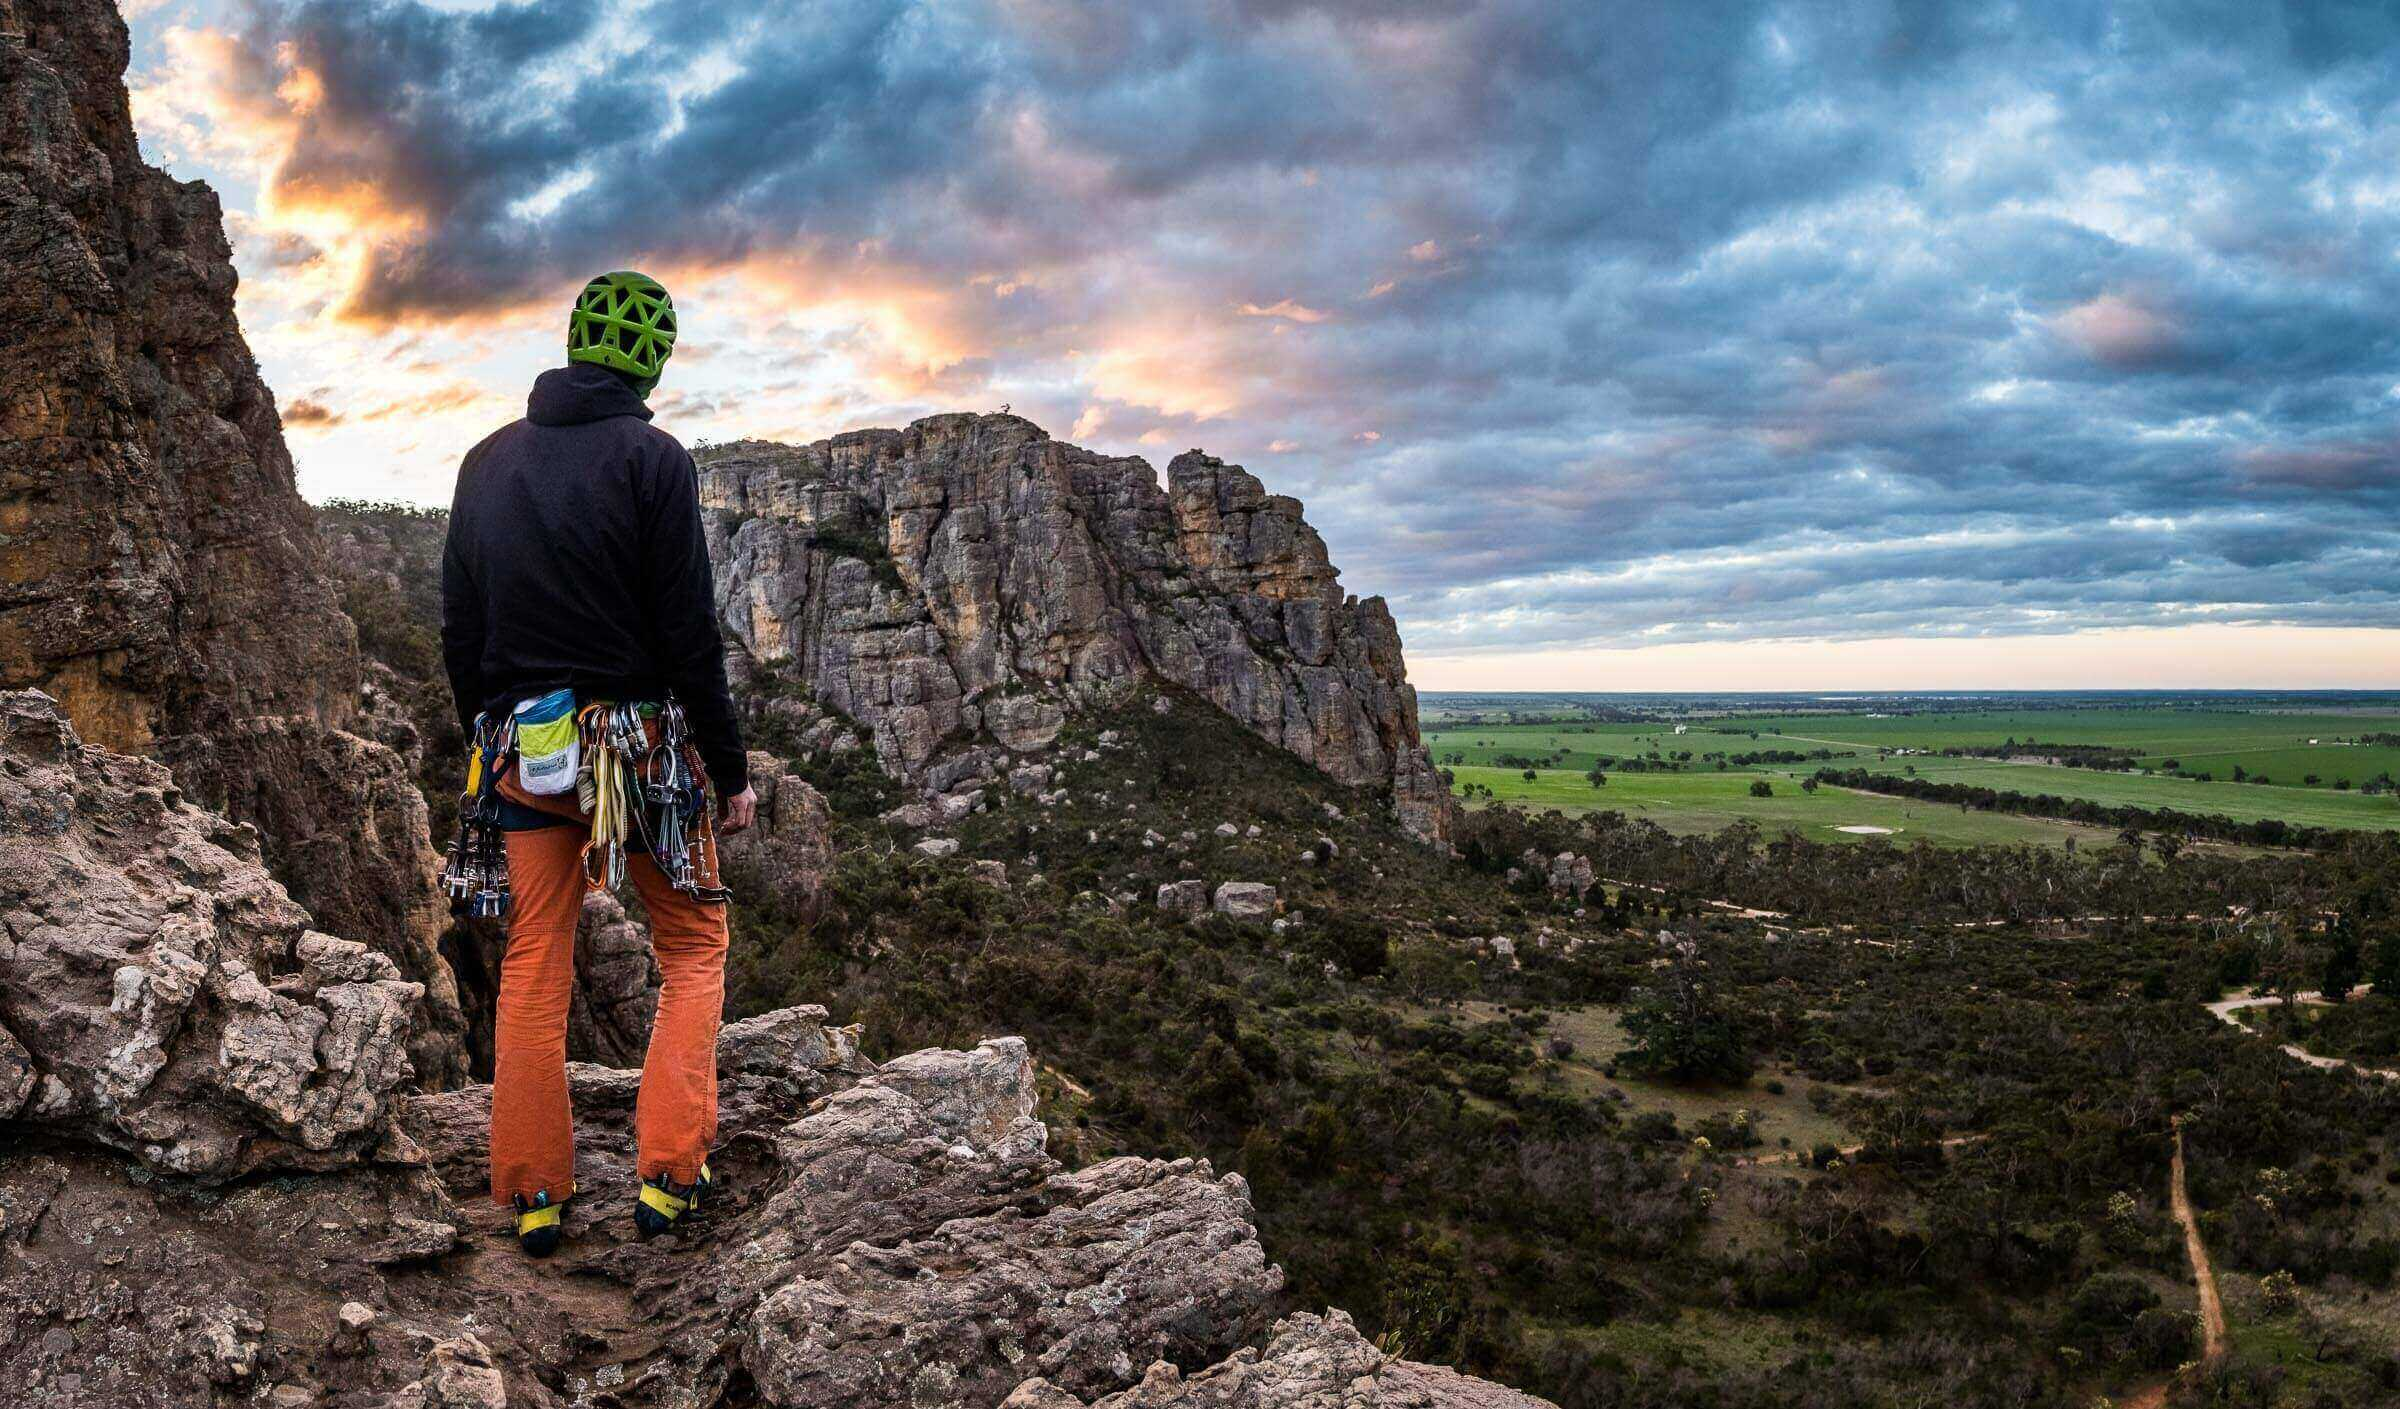 A stitched panorama of Mike McCormack watching sunset over the rock climbing mecca of Mount Arapiles, Victoria